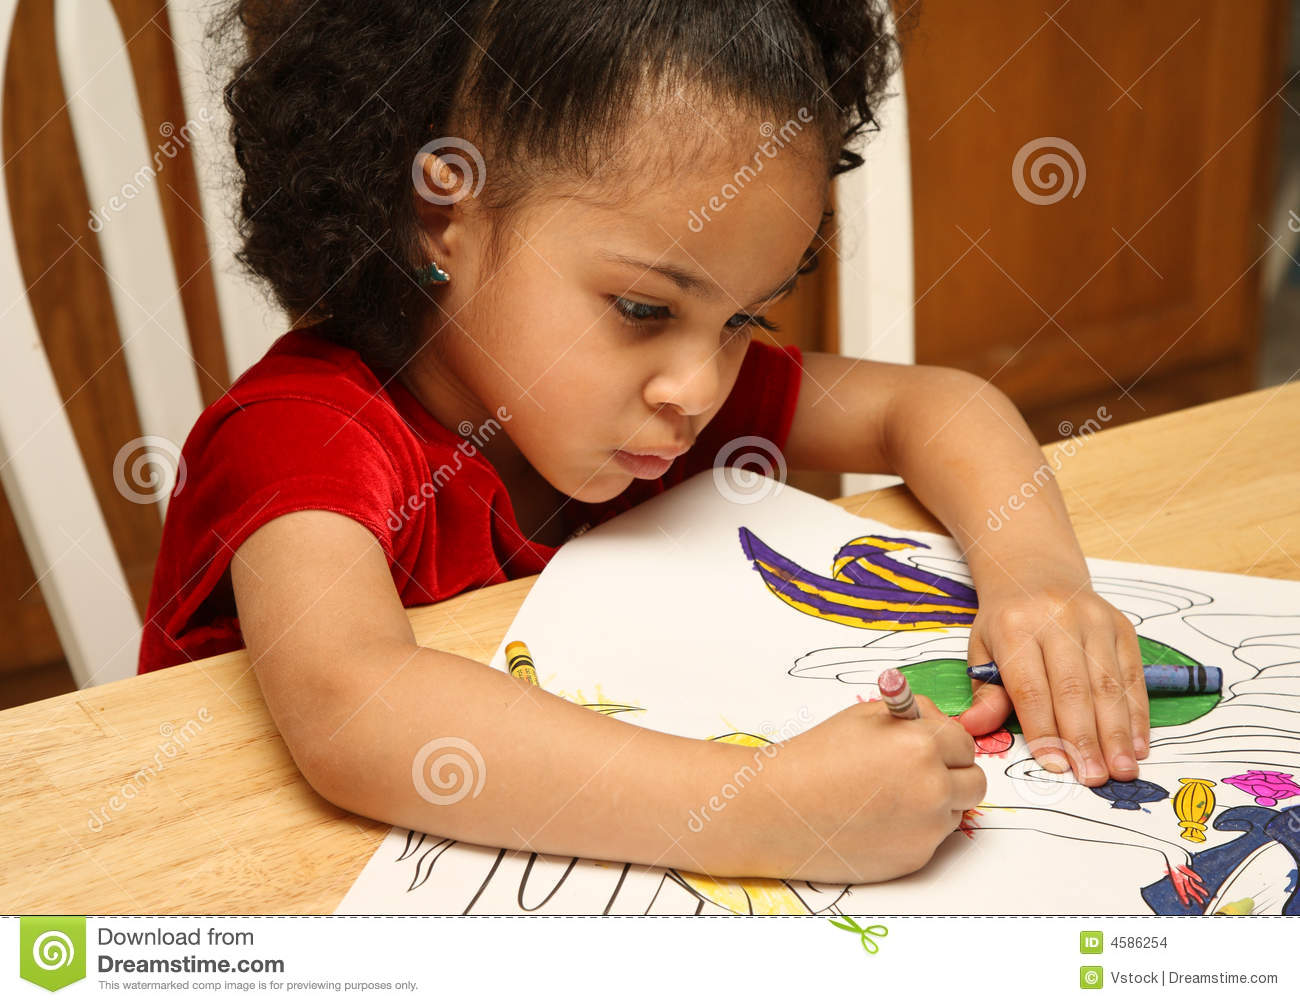 Child coloring stock photo. Image of little, face, expression - 4586254